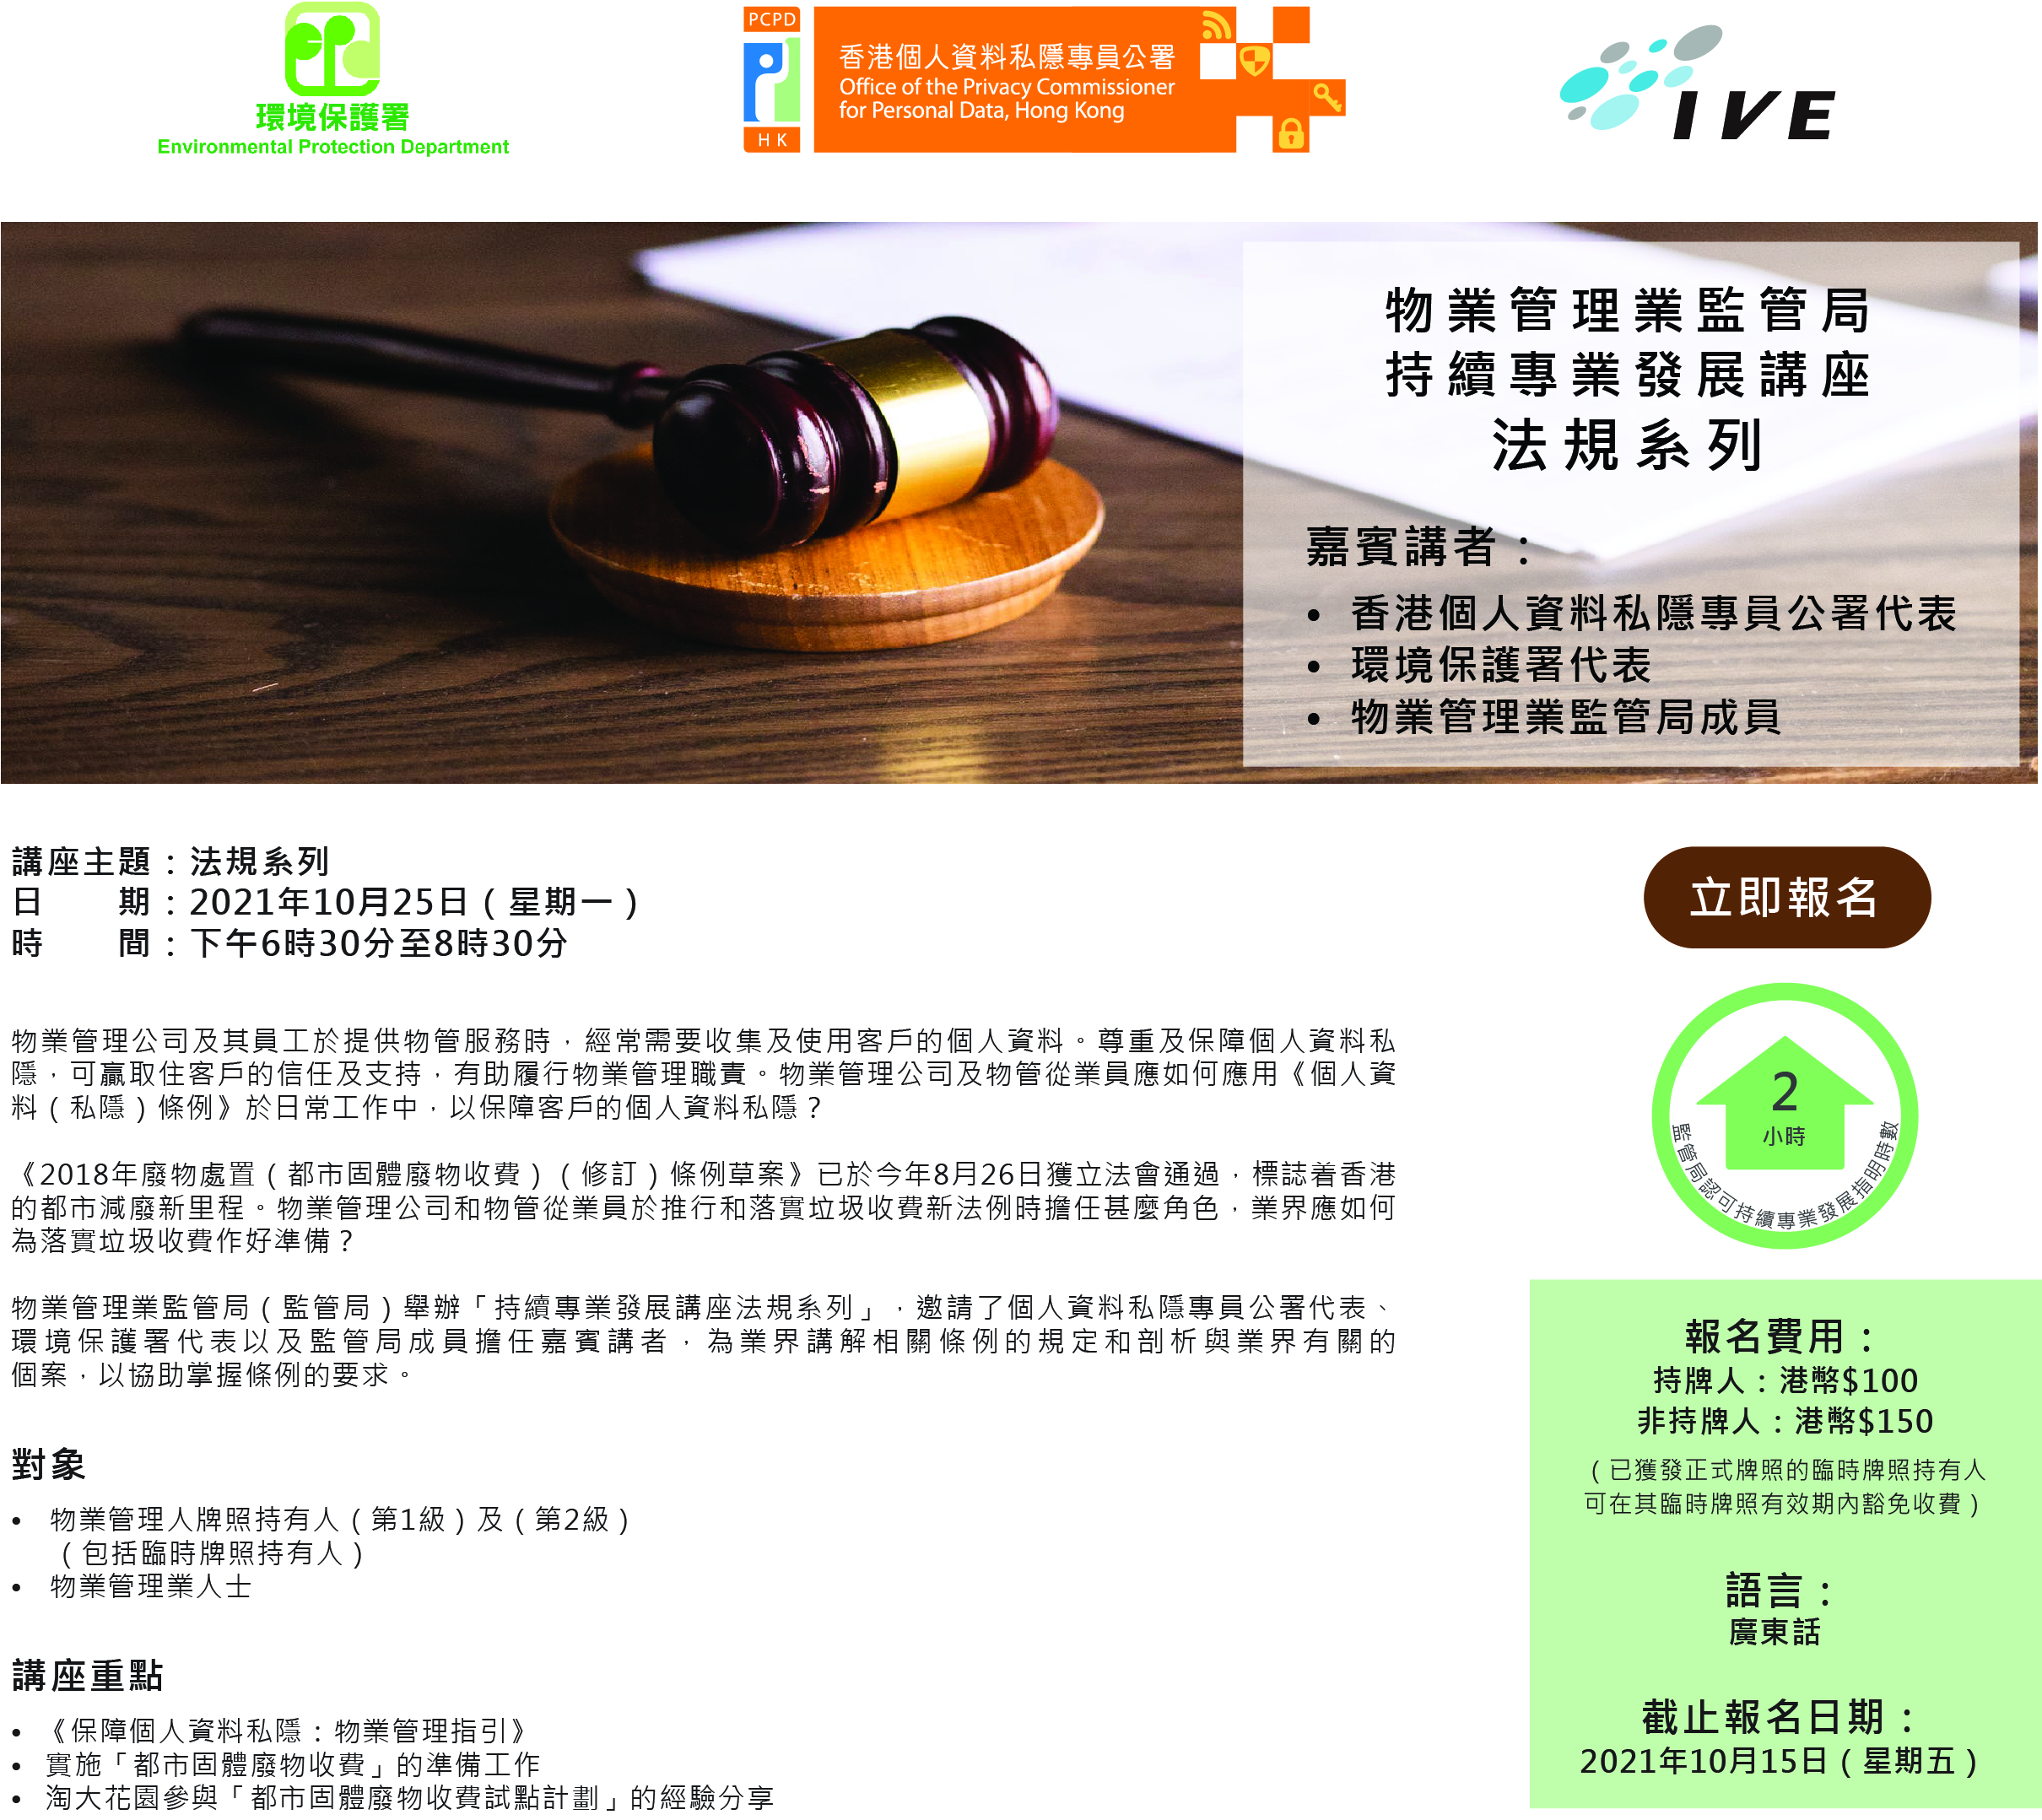 PMSA Seminar – Law and Regulations Series (25 October 2021)(Chinese only)